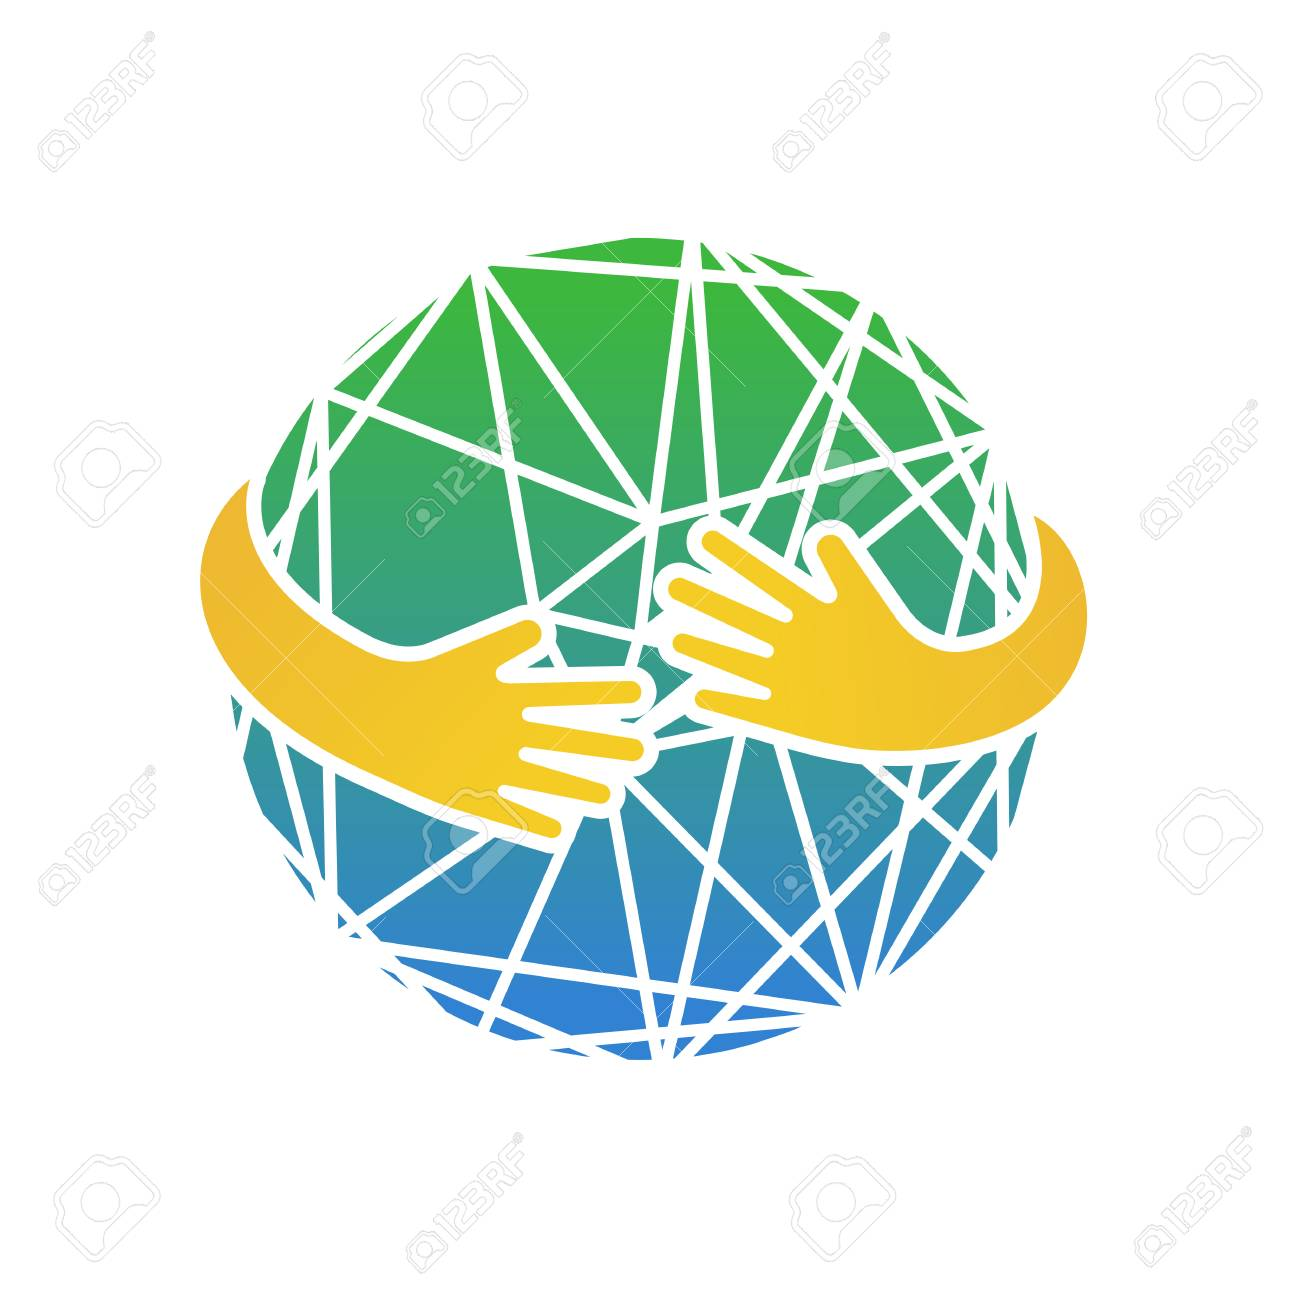 Abstract earth in hands. Circle hug vector illustration - 90111608